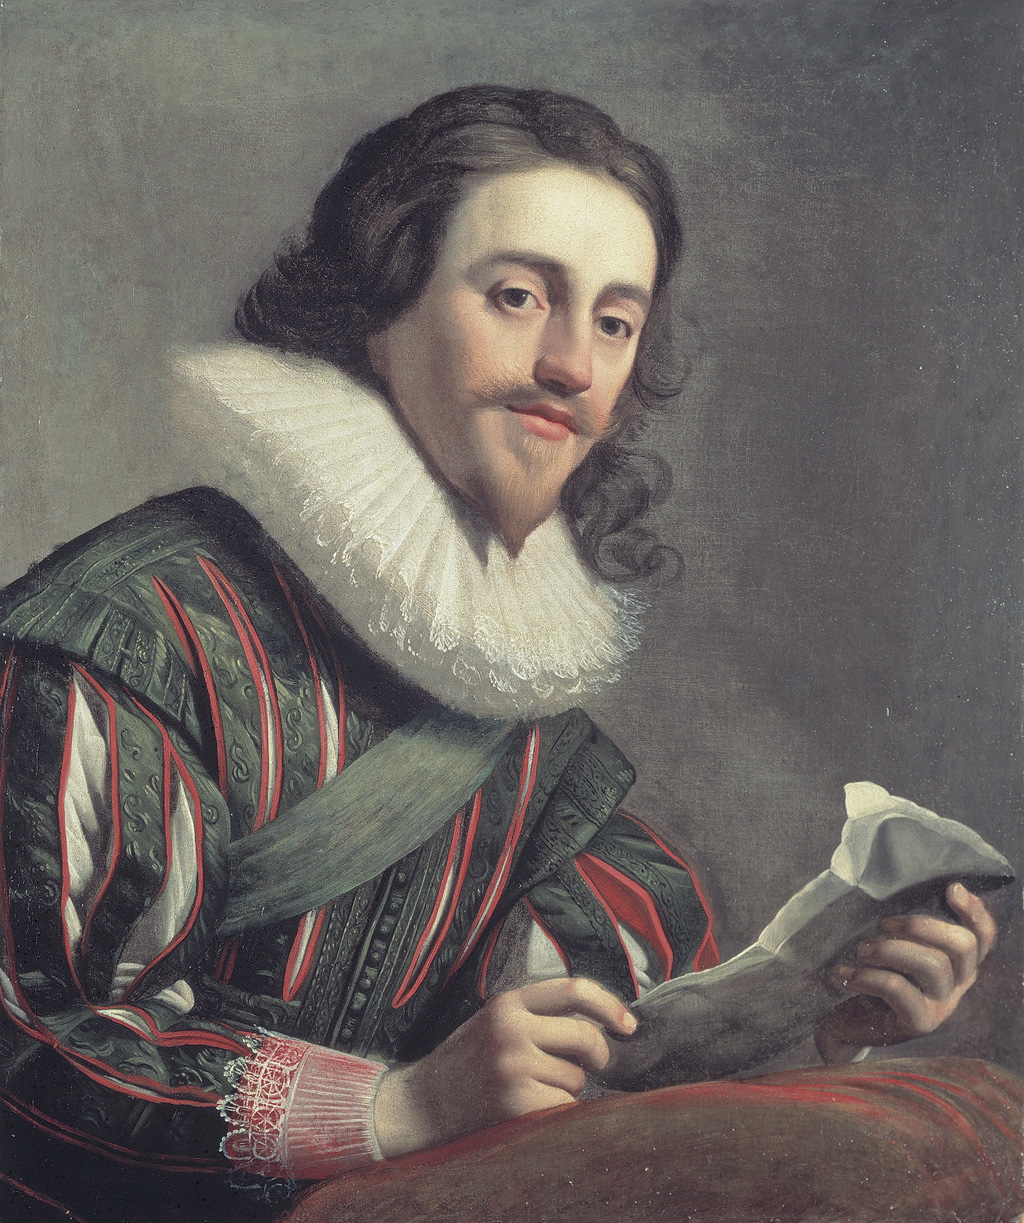 King Charles I was executed because he refused to accept Parliament's right to control tax and spending